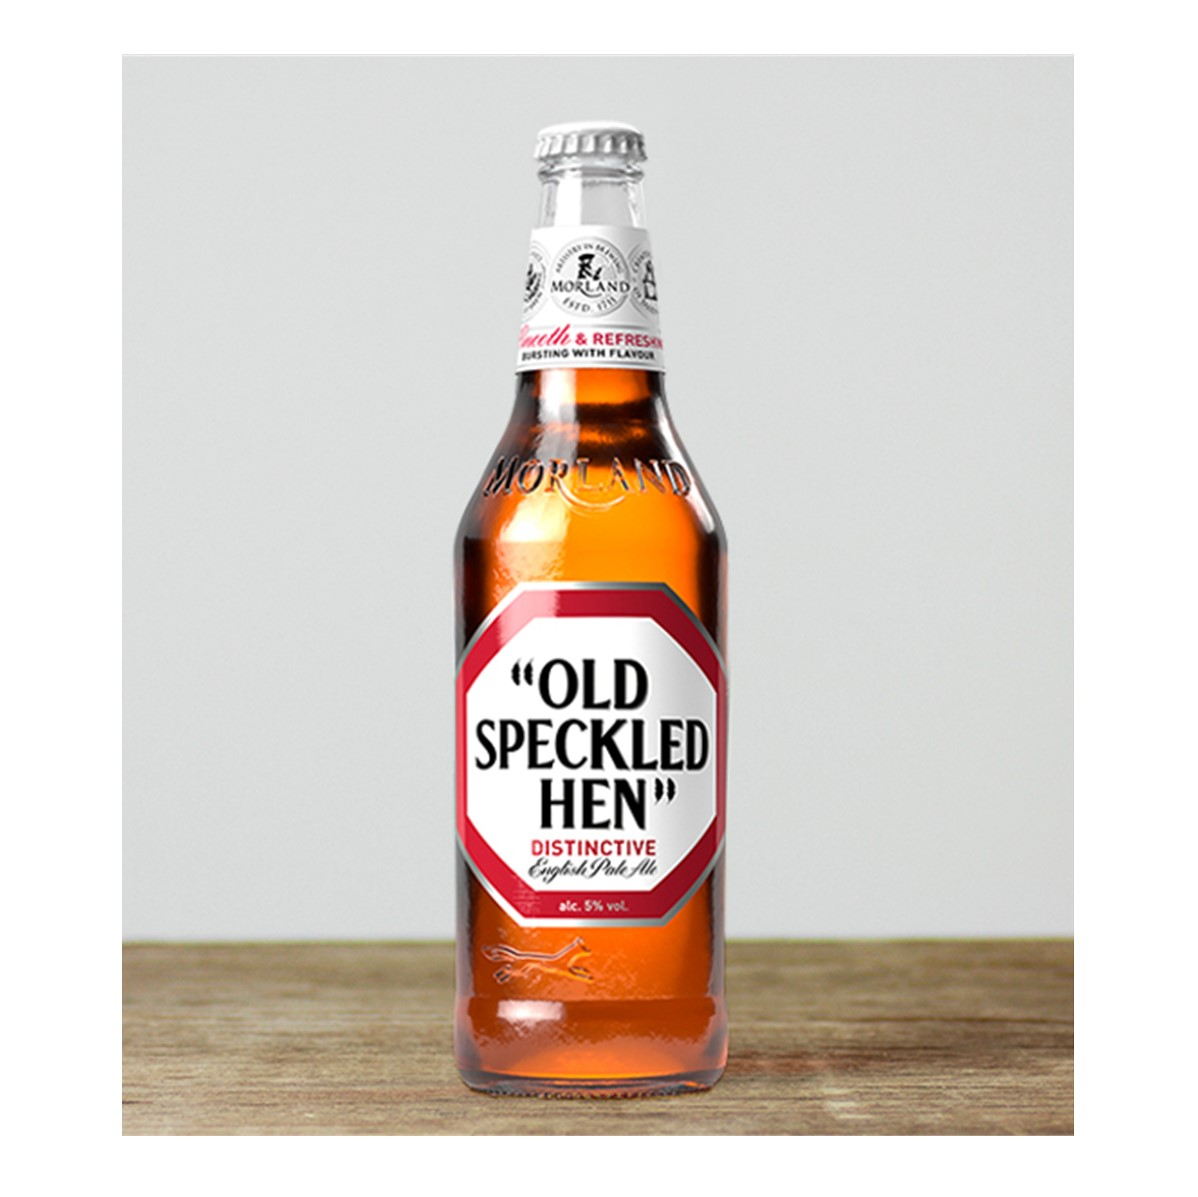 Old Speckled Hen English Pale Ale - 8x500ml bottles